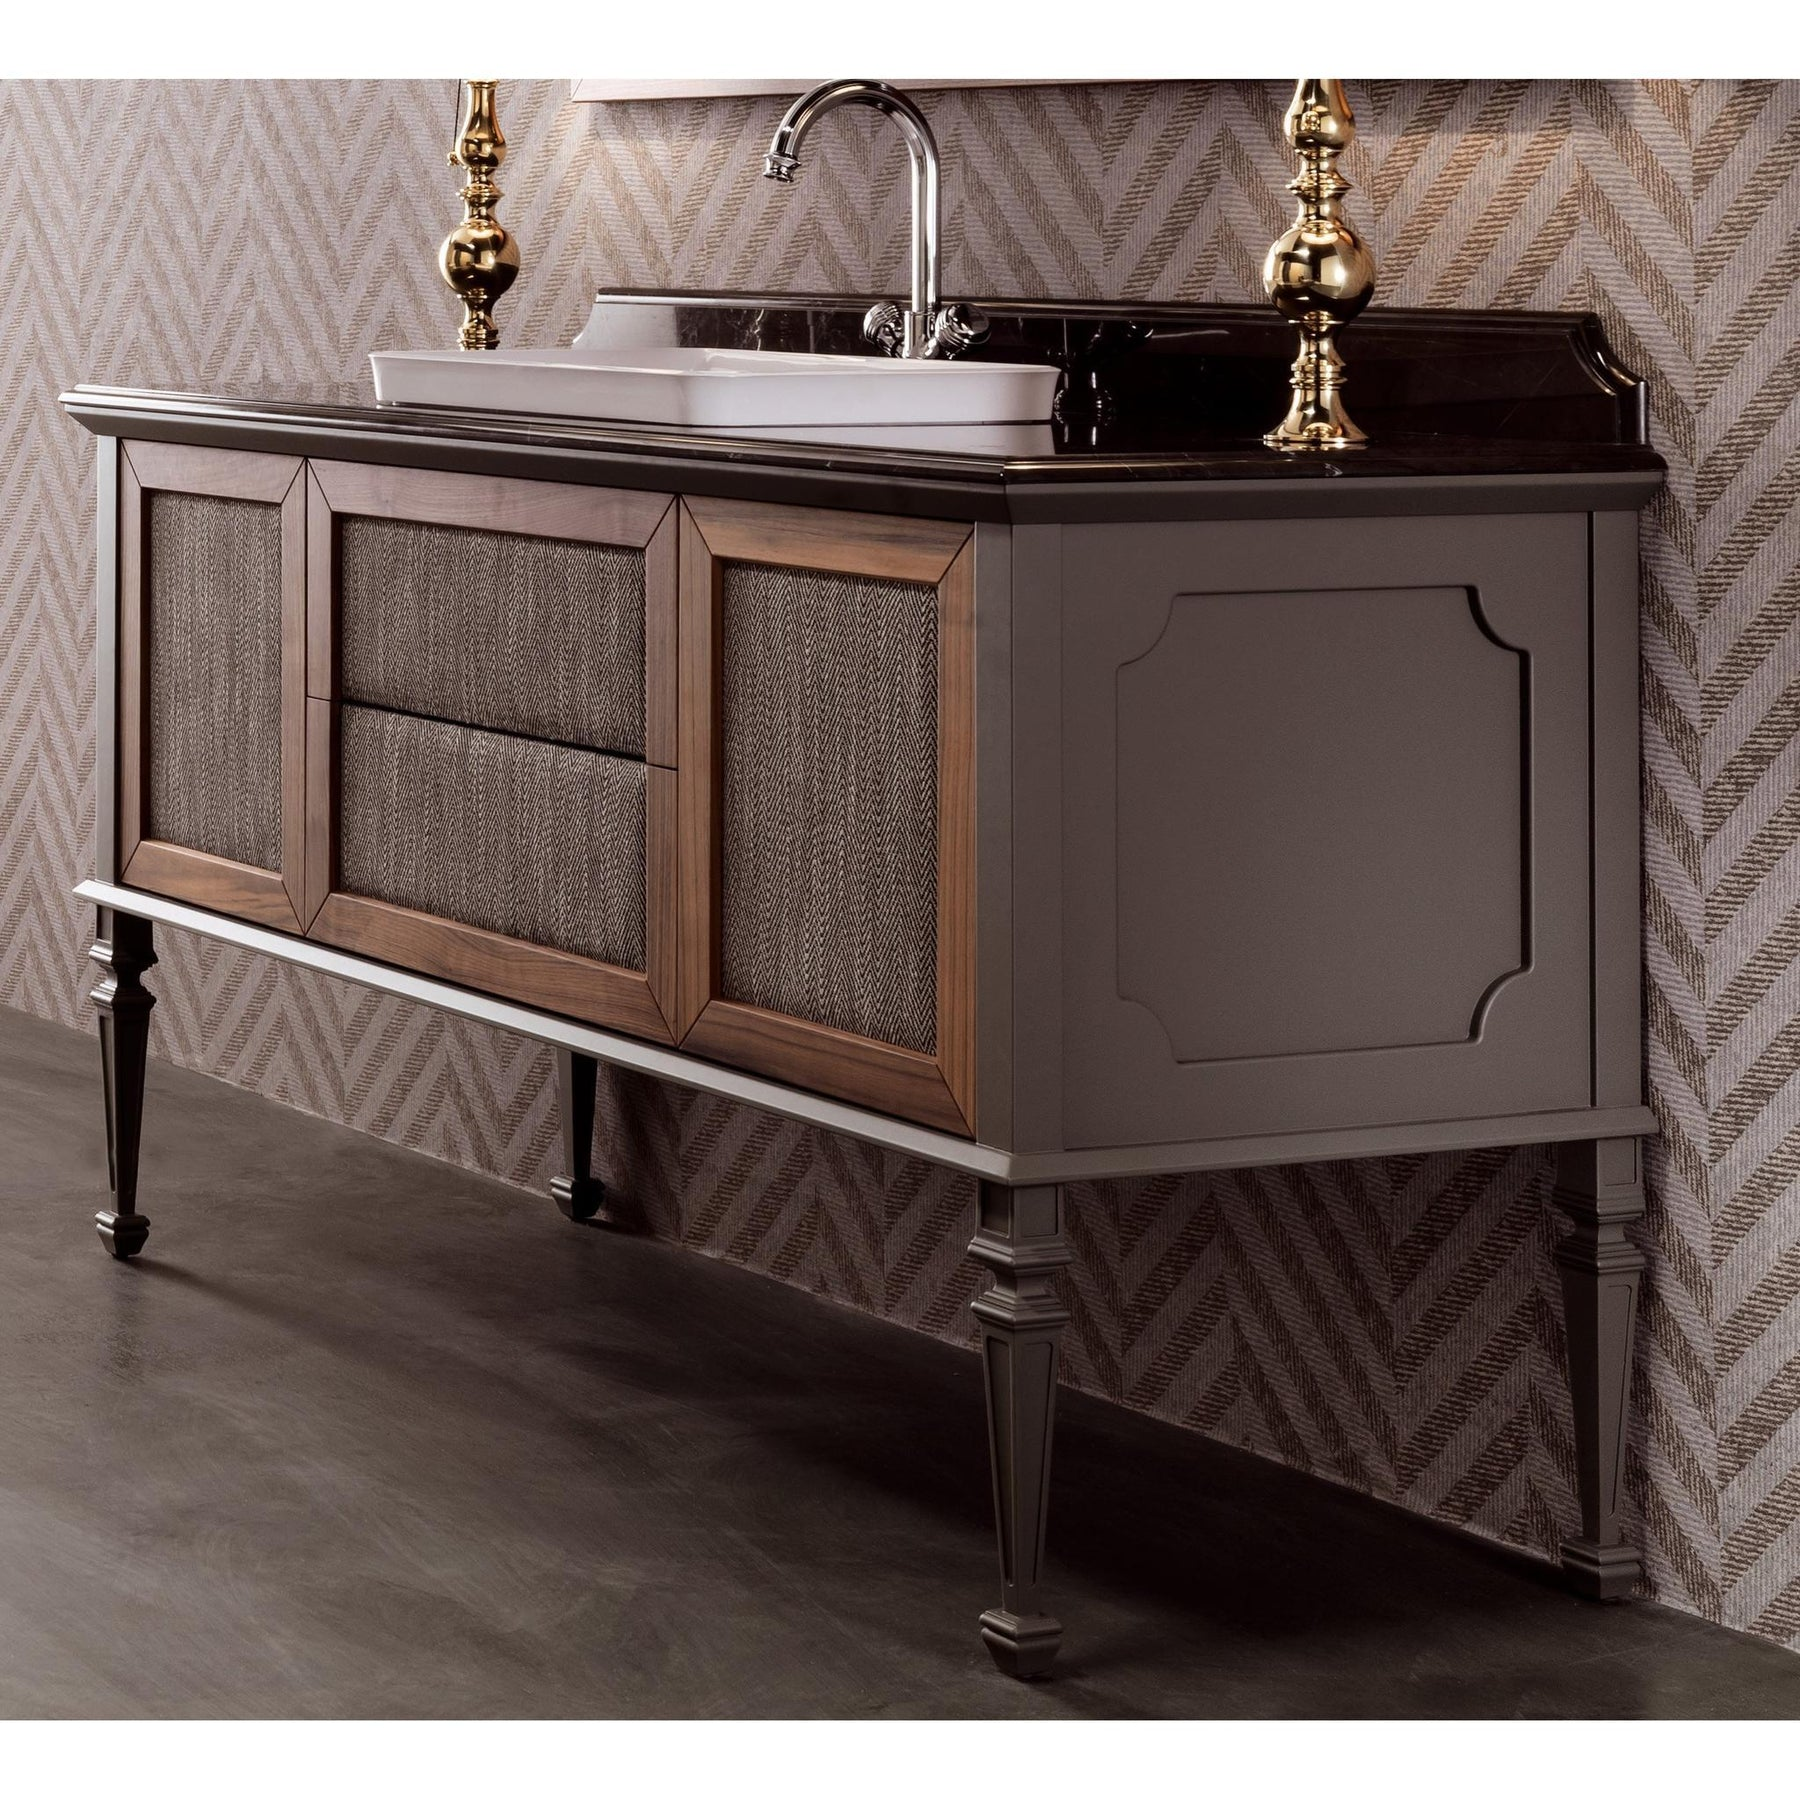 Gm Luxury Atelier 49 6 Bath Vanity Cabinet Single Sink Toulipier Wood Walnut Gray Finish Gm Luxury Bath Collection Bathroom Vanities And Sink Consoles 4 Drawers 44 To 50 Inches Above 15000 00